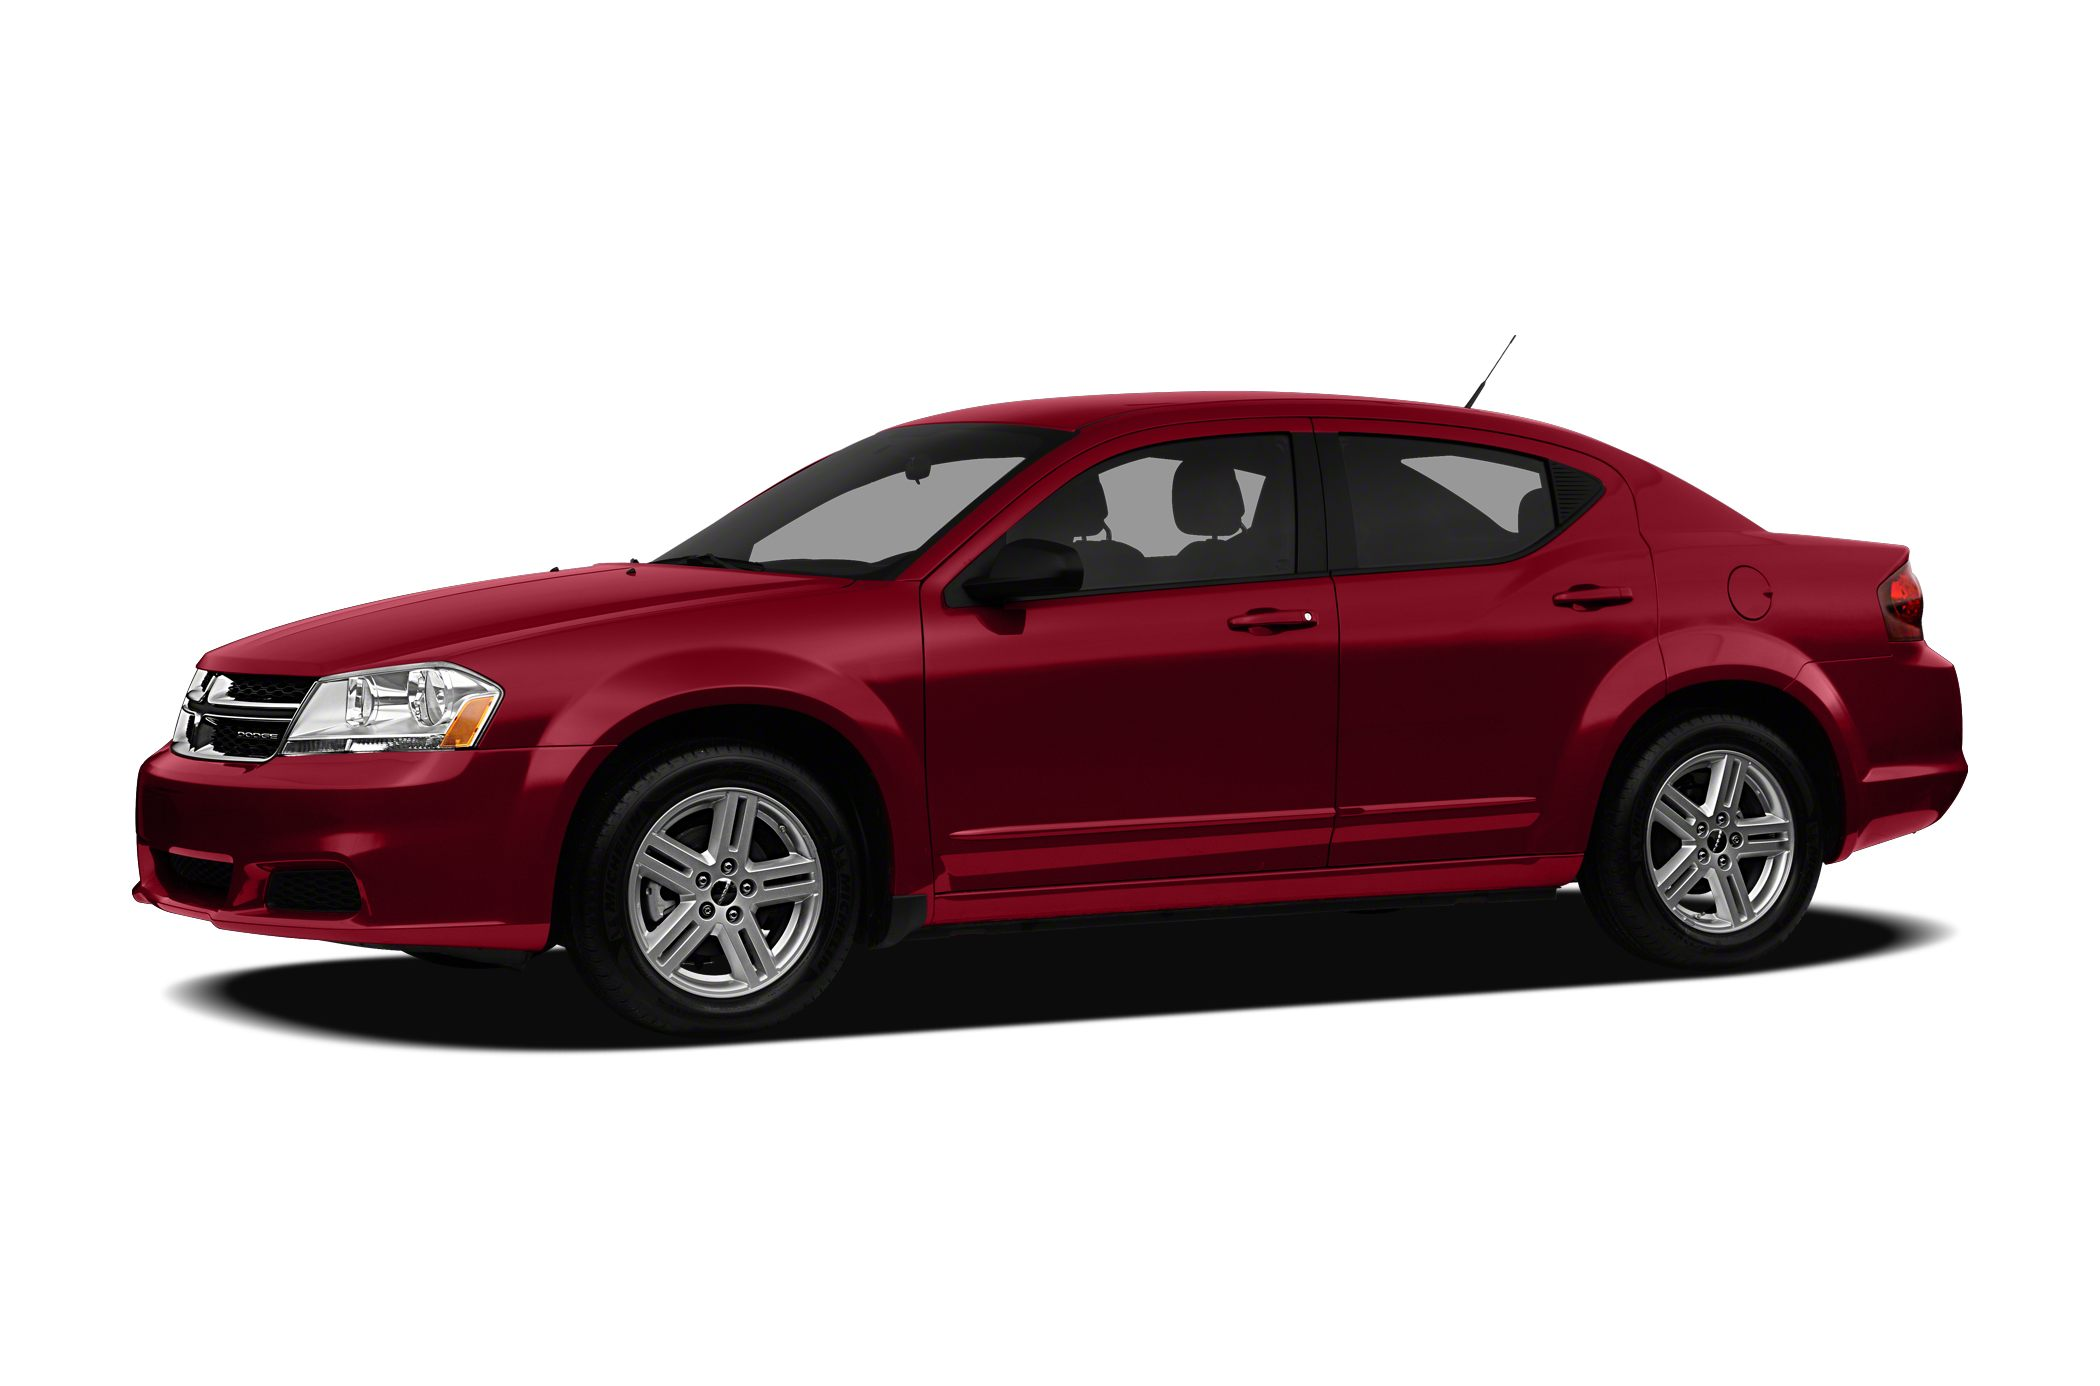 2011 Dodge Avenger Lux Sedan for sale in Clinton for $14,995 with 47,127 miles